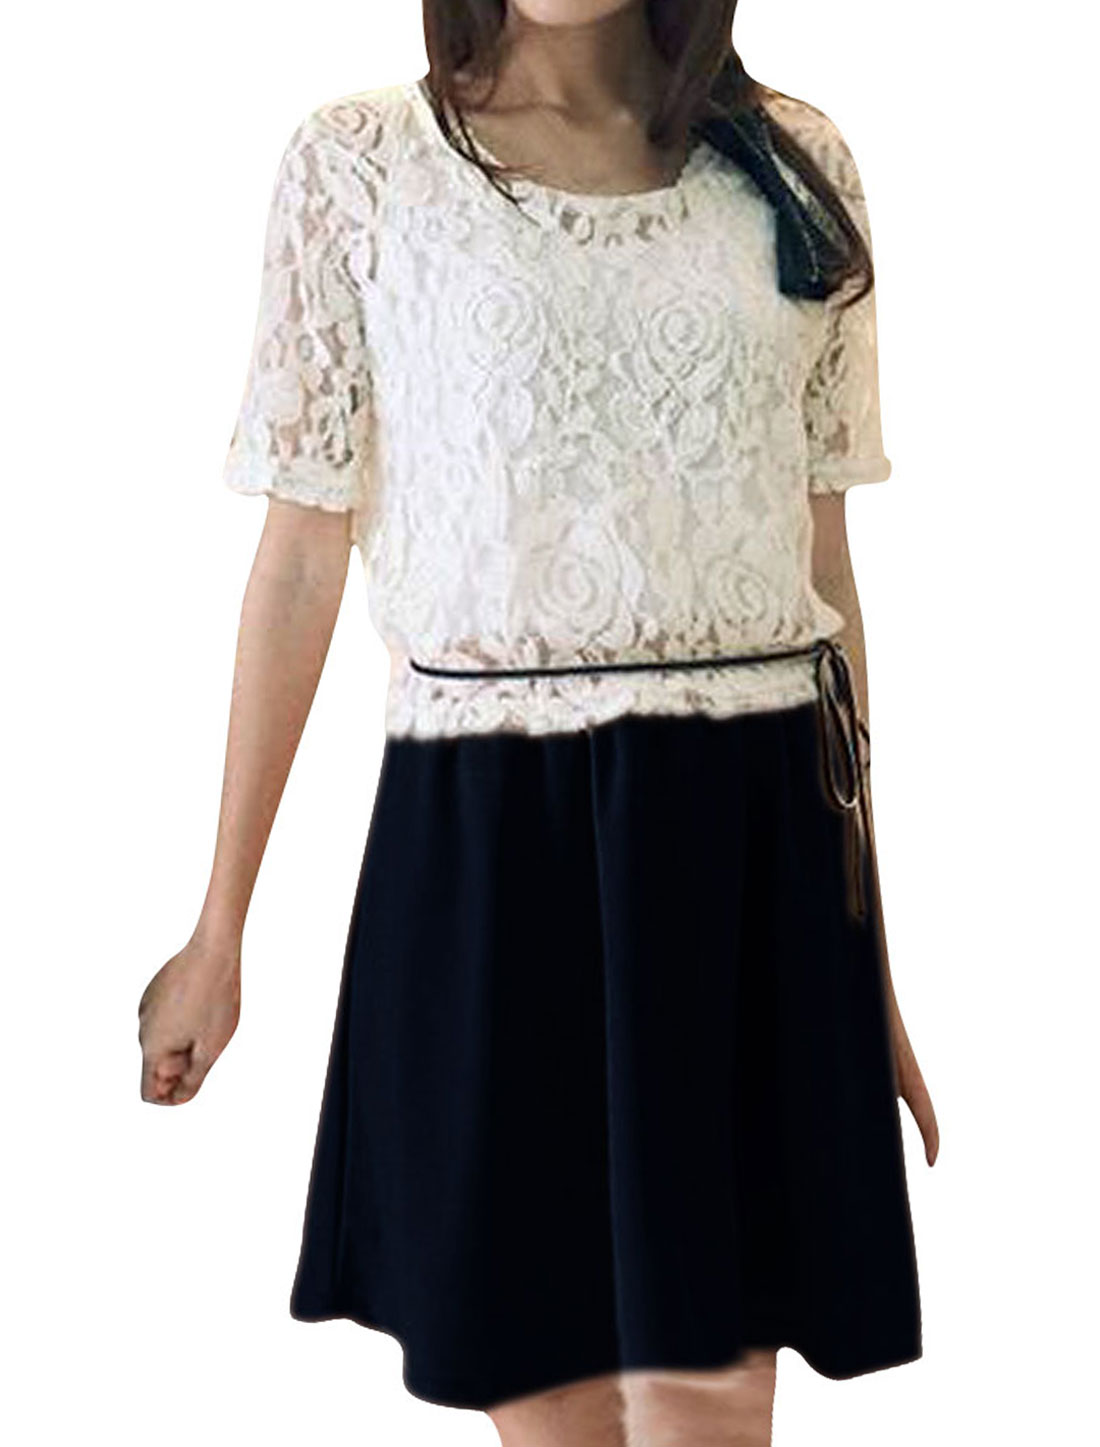 Ladies Two Piece Panel Dark Blue Dress With White Sheerness Lace Smock XS